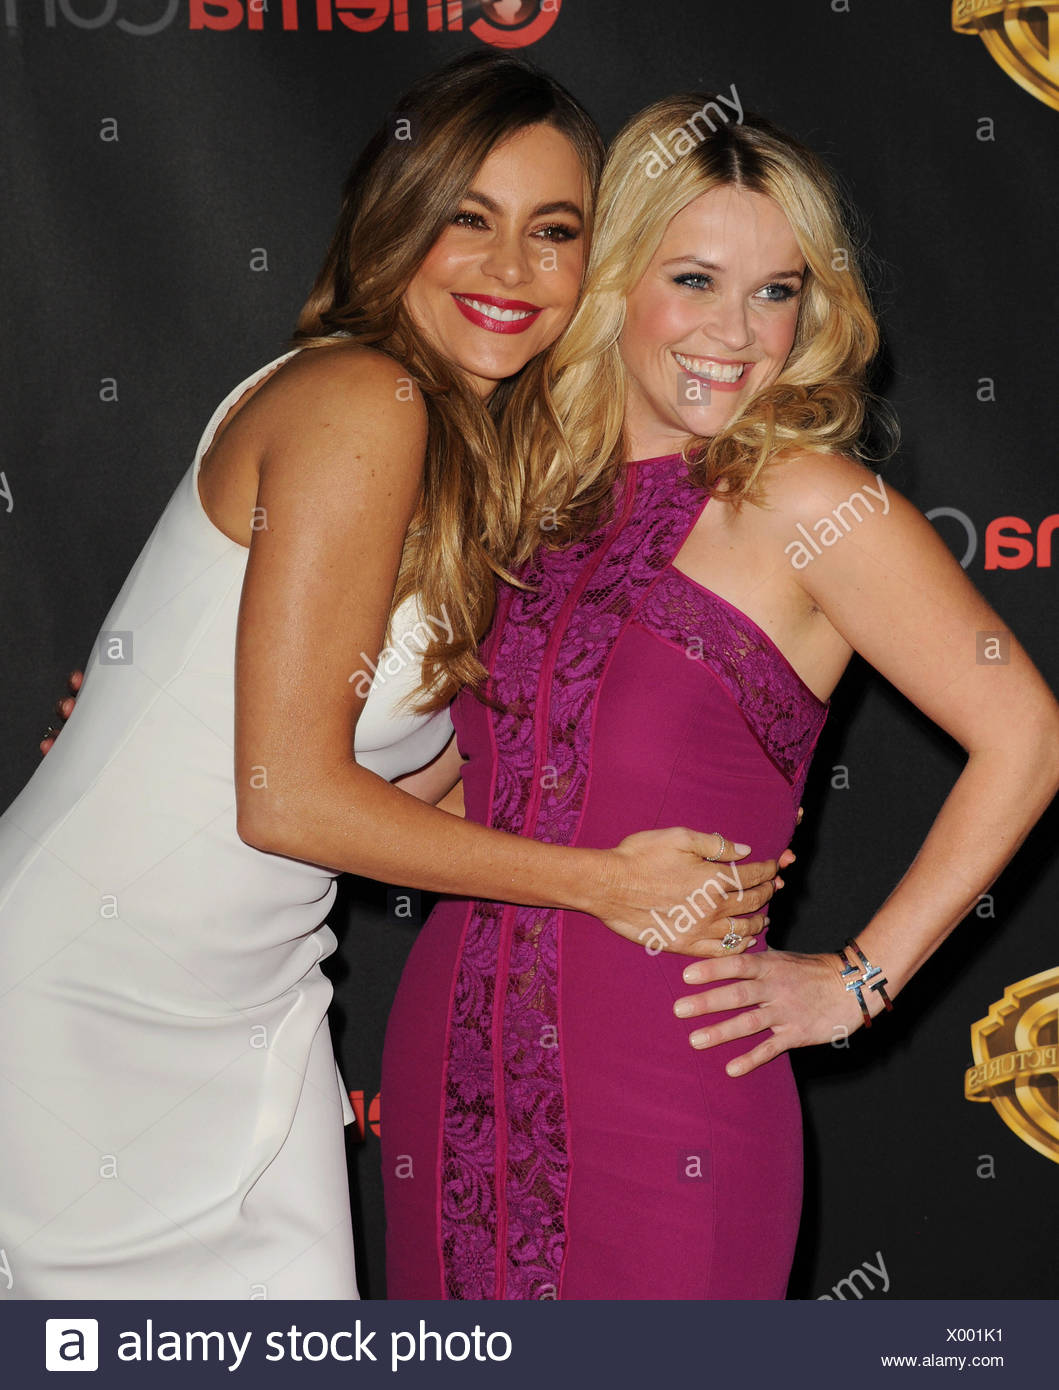 Actresses Reese Witherspoon (L) and Sofia Vergara arrive at Warner Bros. Pictures Invites You to ?The Big Picture at The Colosseum at Caesars Palace during CinemaCon, the official convention of the National Association of Theatre Owners, on April 21, 2015 in Las Vegas, Nevada., Additional-Rights-Clearances-NA Stock Photo